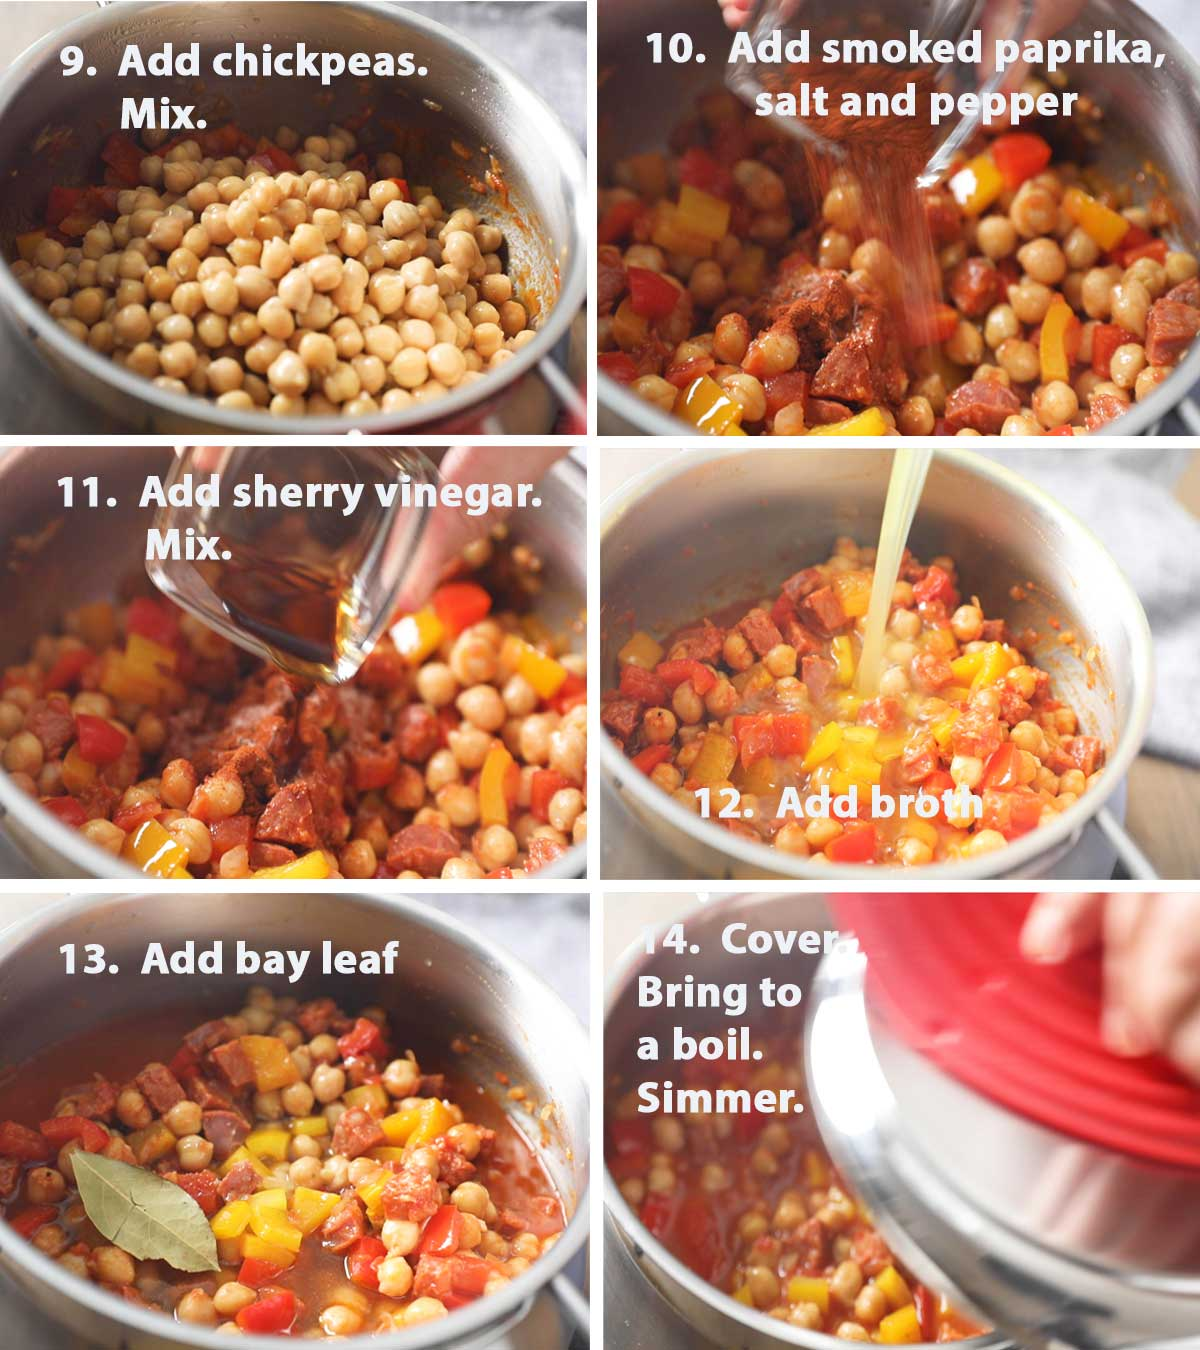 Last part of a collage of images showing the step by step process of how to make Spanish Chorizo and Chickpea Stew.